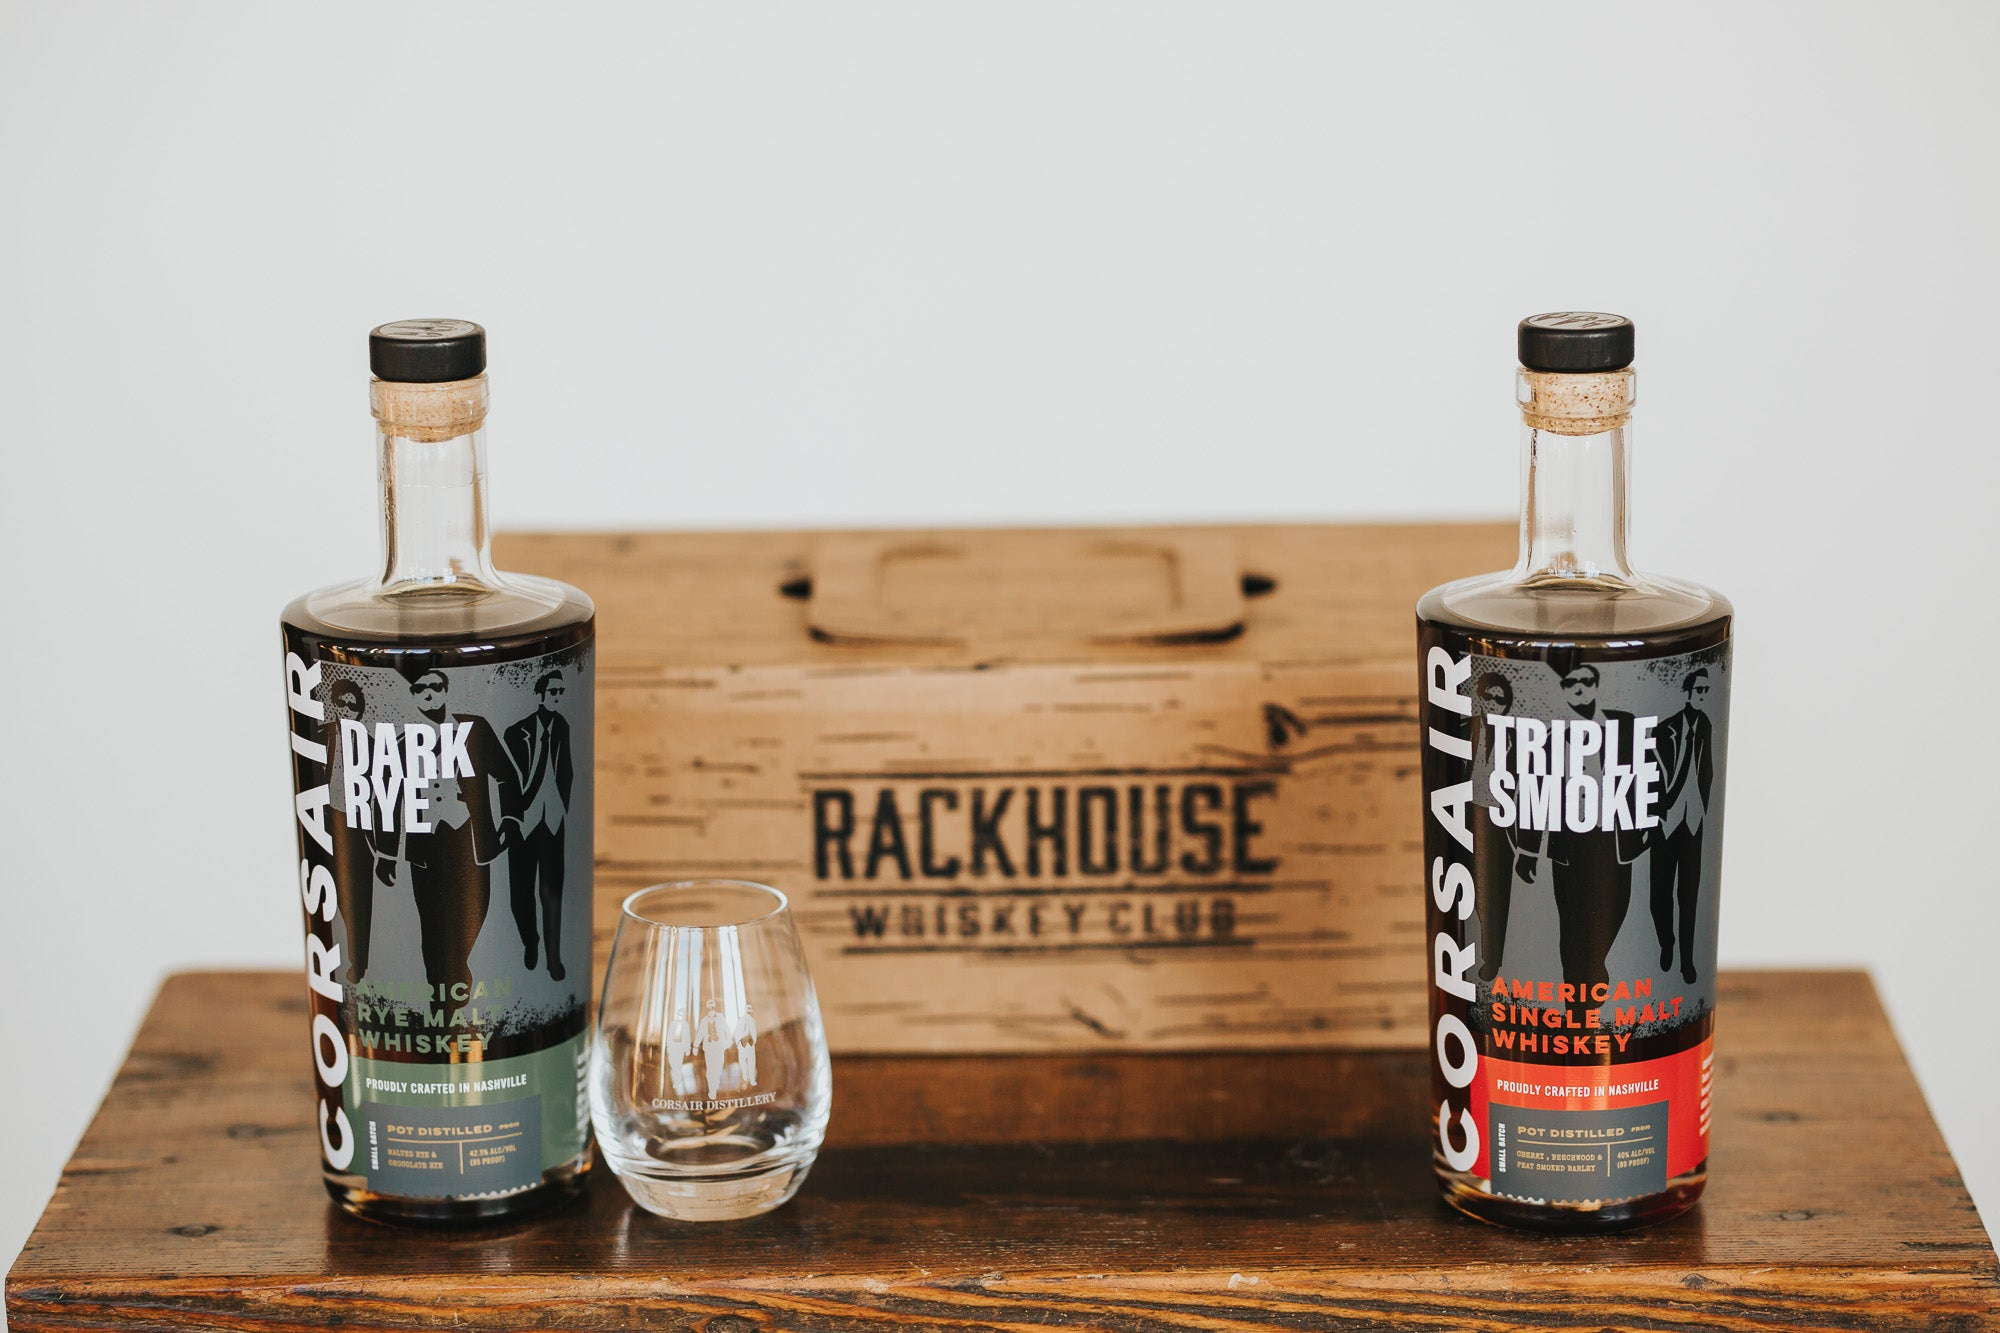 Corsair Distillery RackHouse Whiskey Club